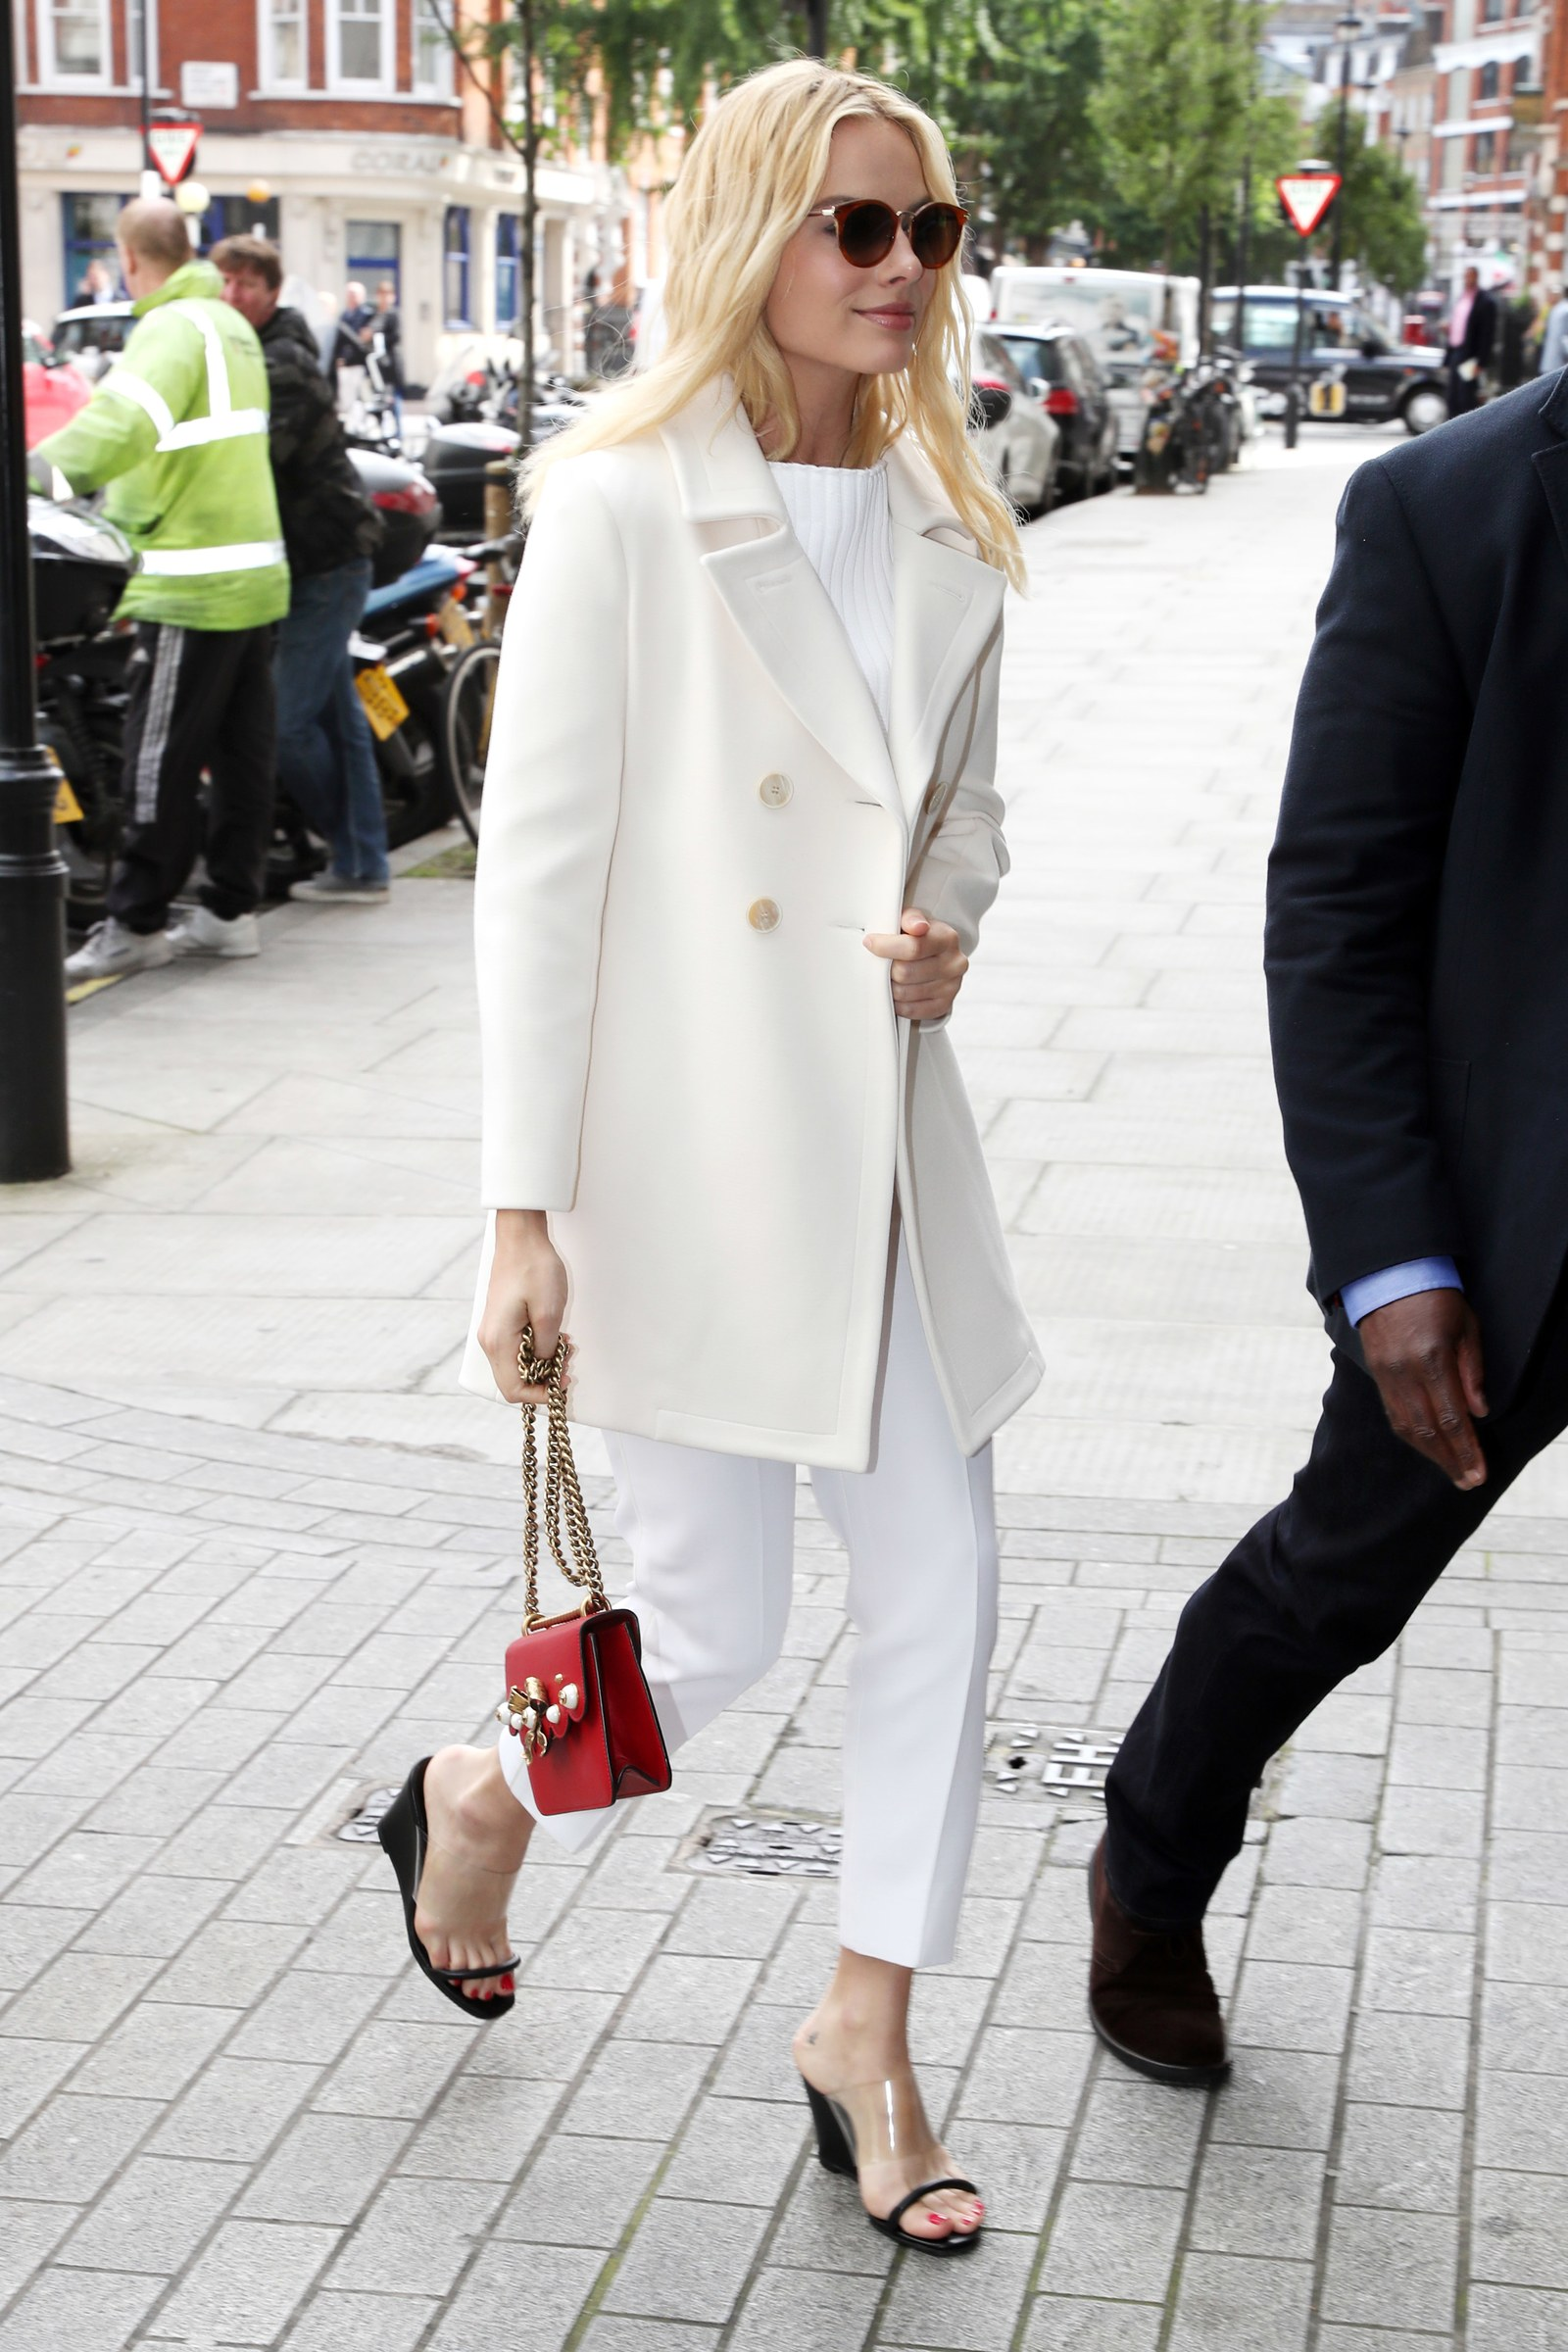 Margot Robbie mang sandals trong suốt